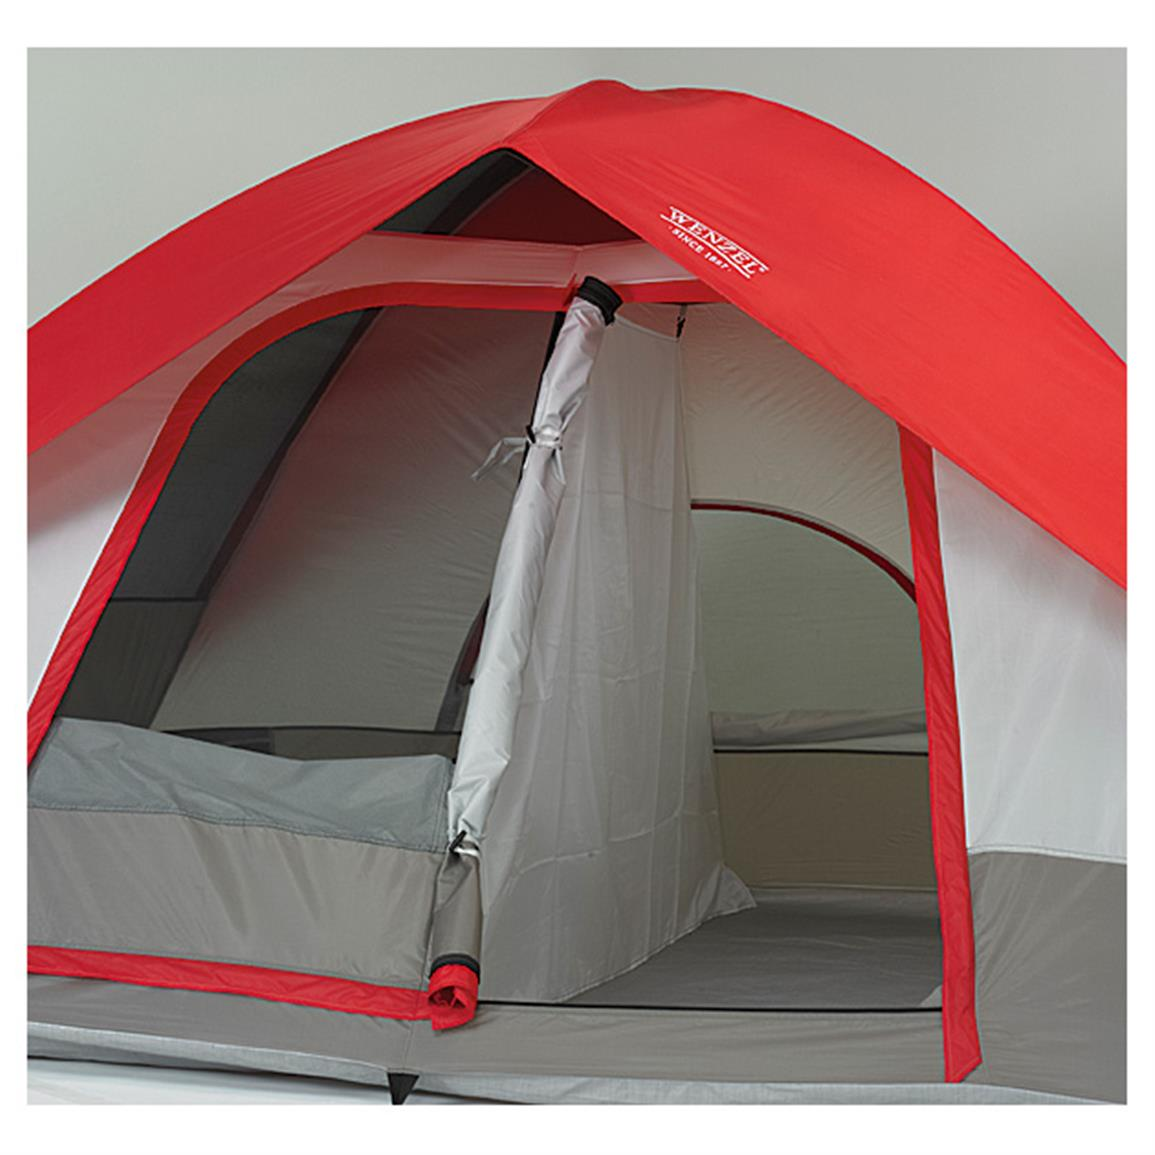 Wenzel Pine Ridge 5 Tent. Removable ider curtain for privacy & Wenzel Pine Ridge 5 Tent - 627358 Dome Tents at Sportsmanu0027s Guide